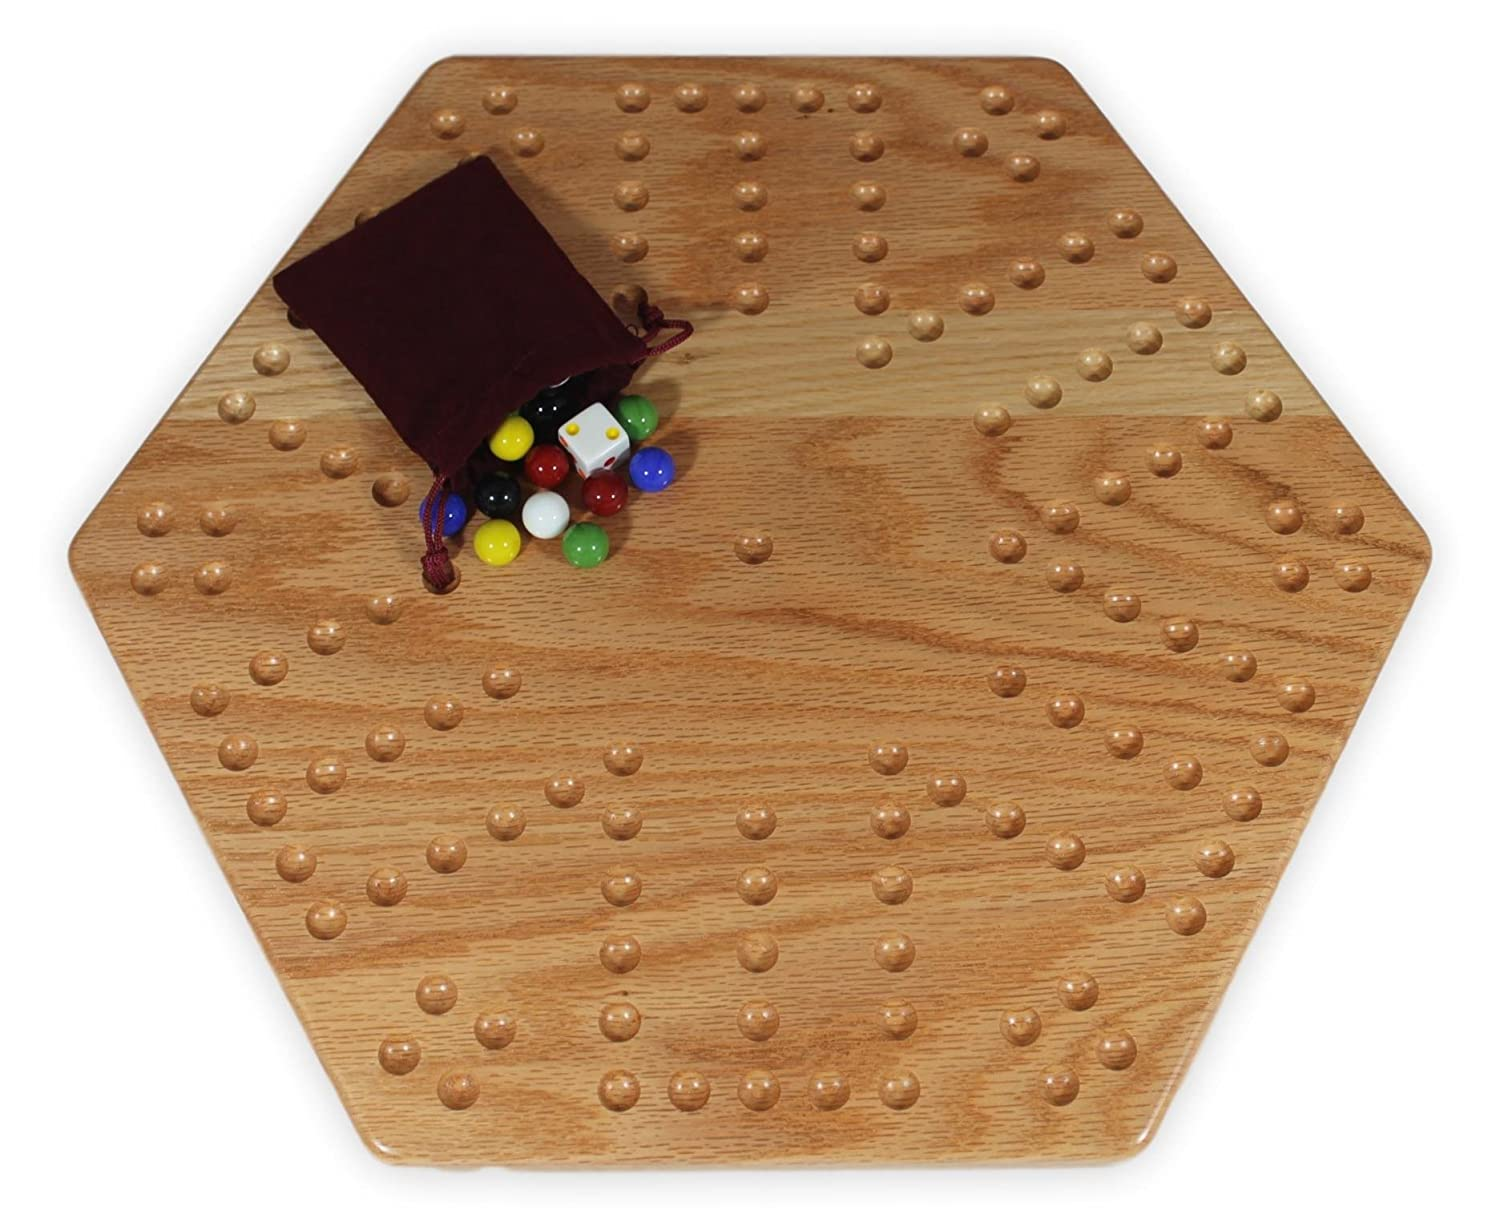 Solid Oak Double-sided 16 Aggravation (Wahoo) Board Game Set by AmishToyBox.com